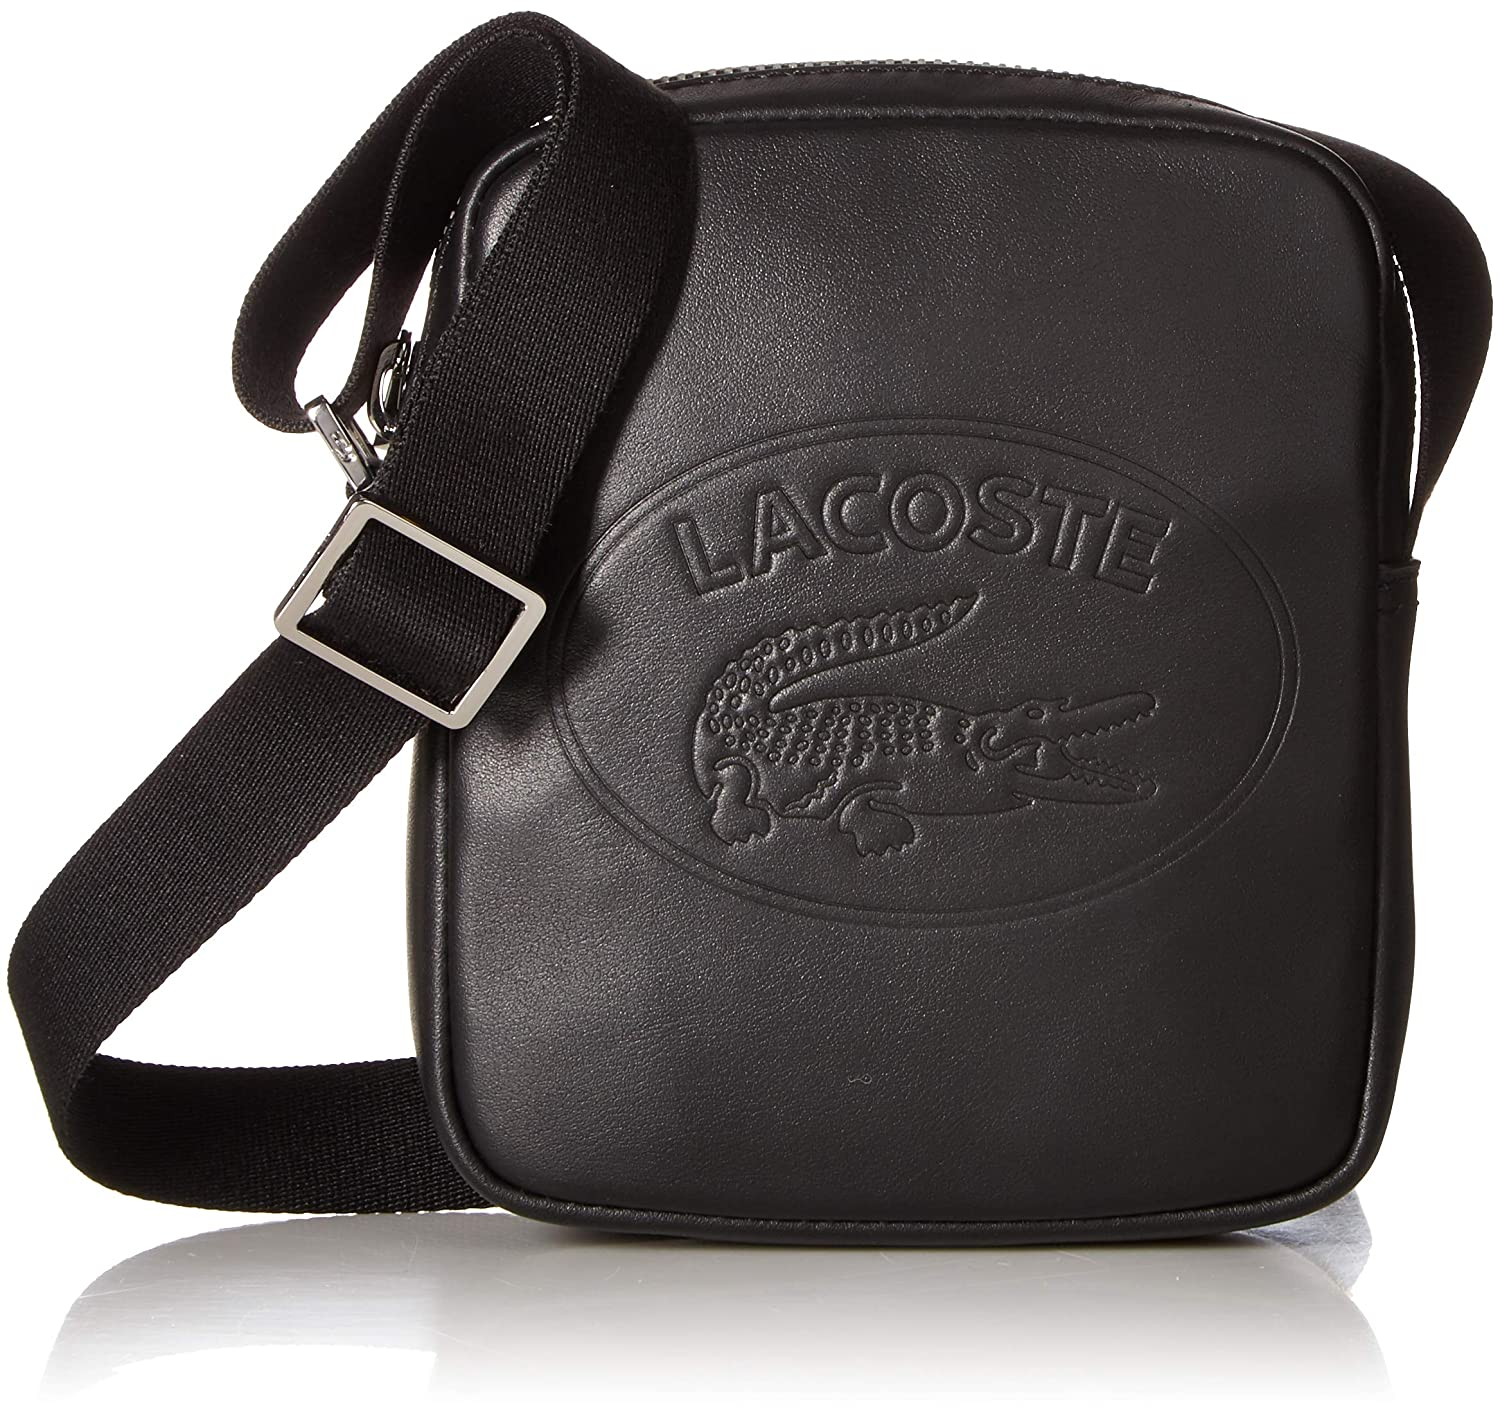 a06912bed Amazon.com  Lacoste Men s Leather Mini Vertical Camera Bag with Badge Logo